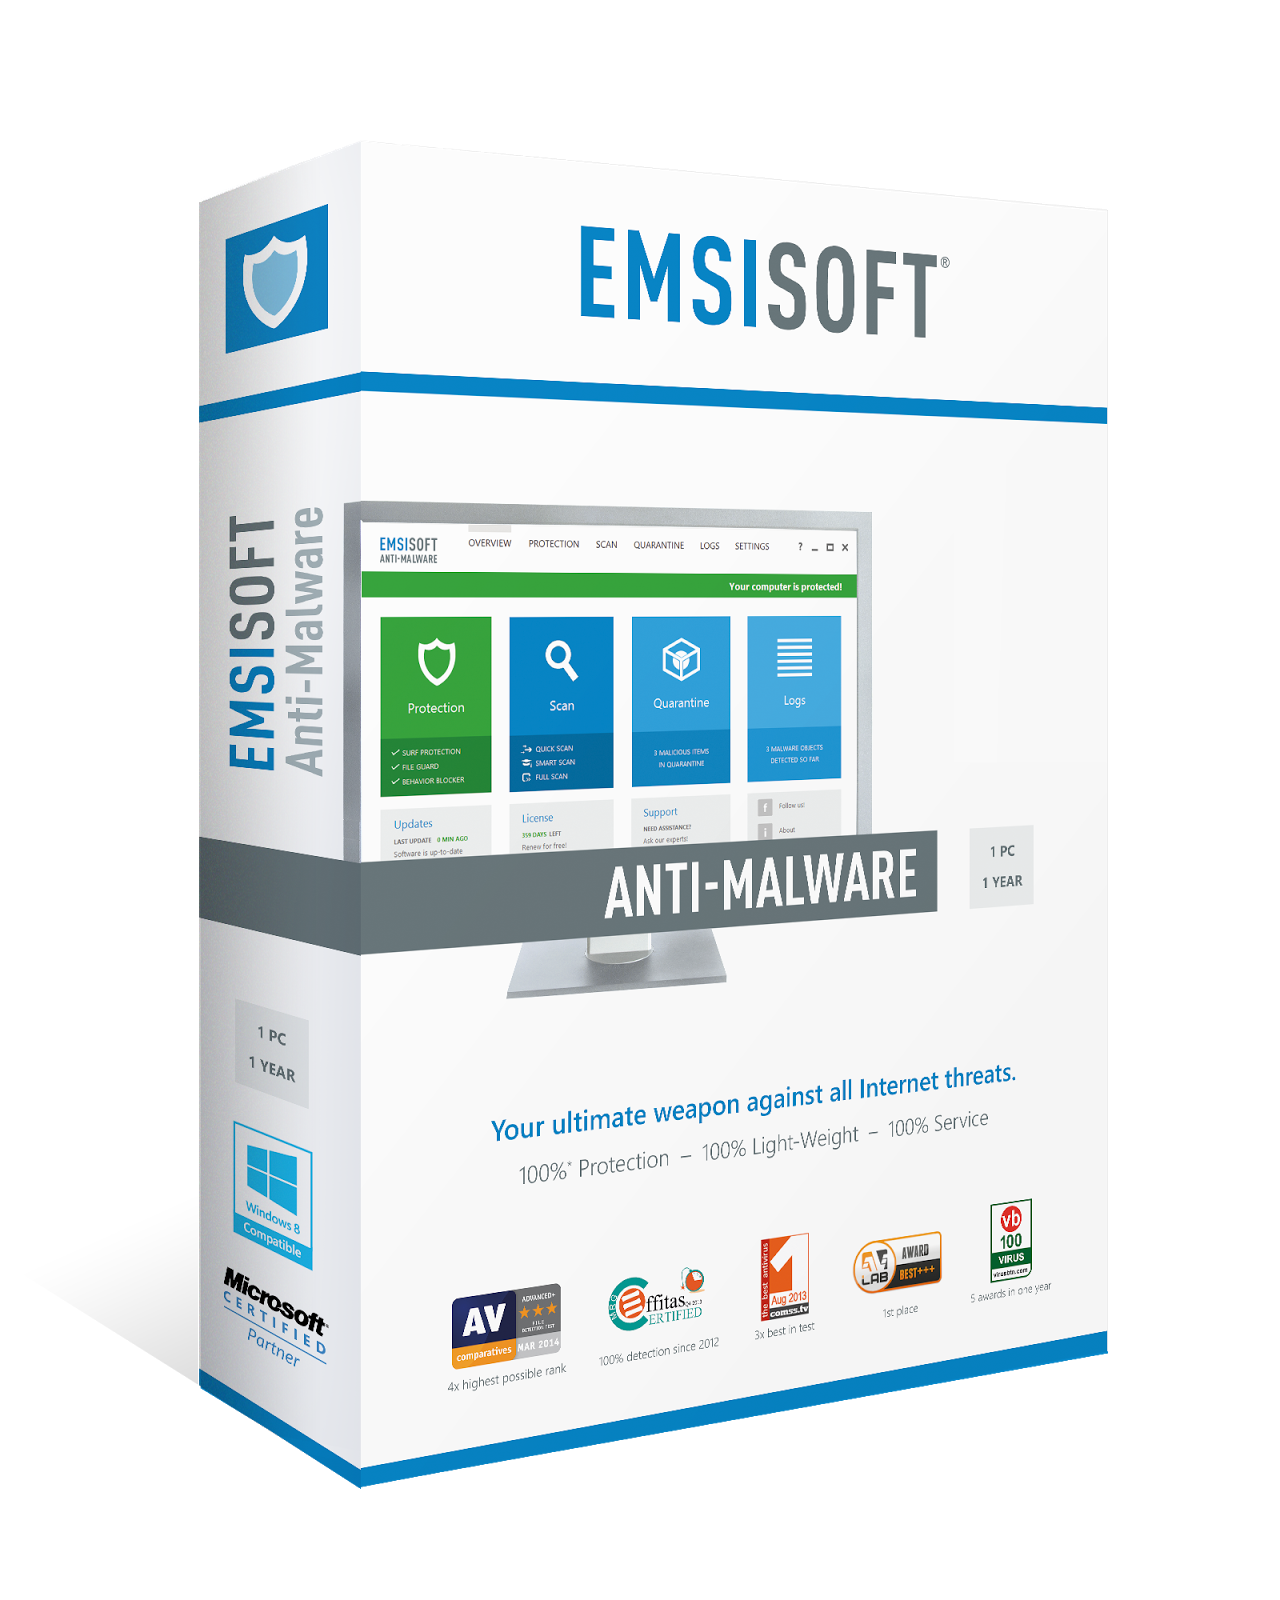 EMSISOFT ANTIMALWARE